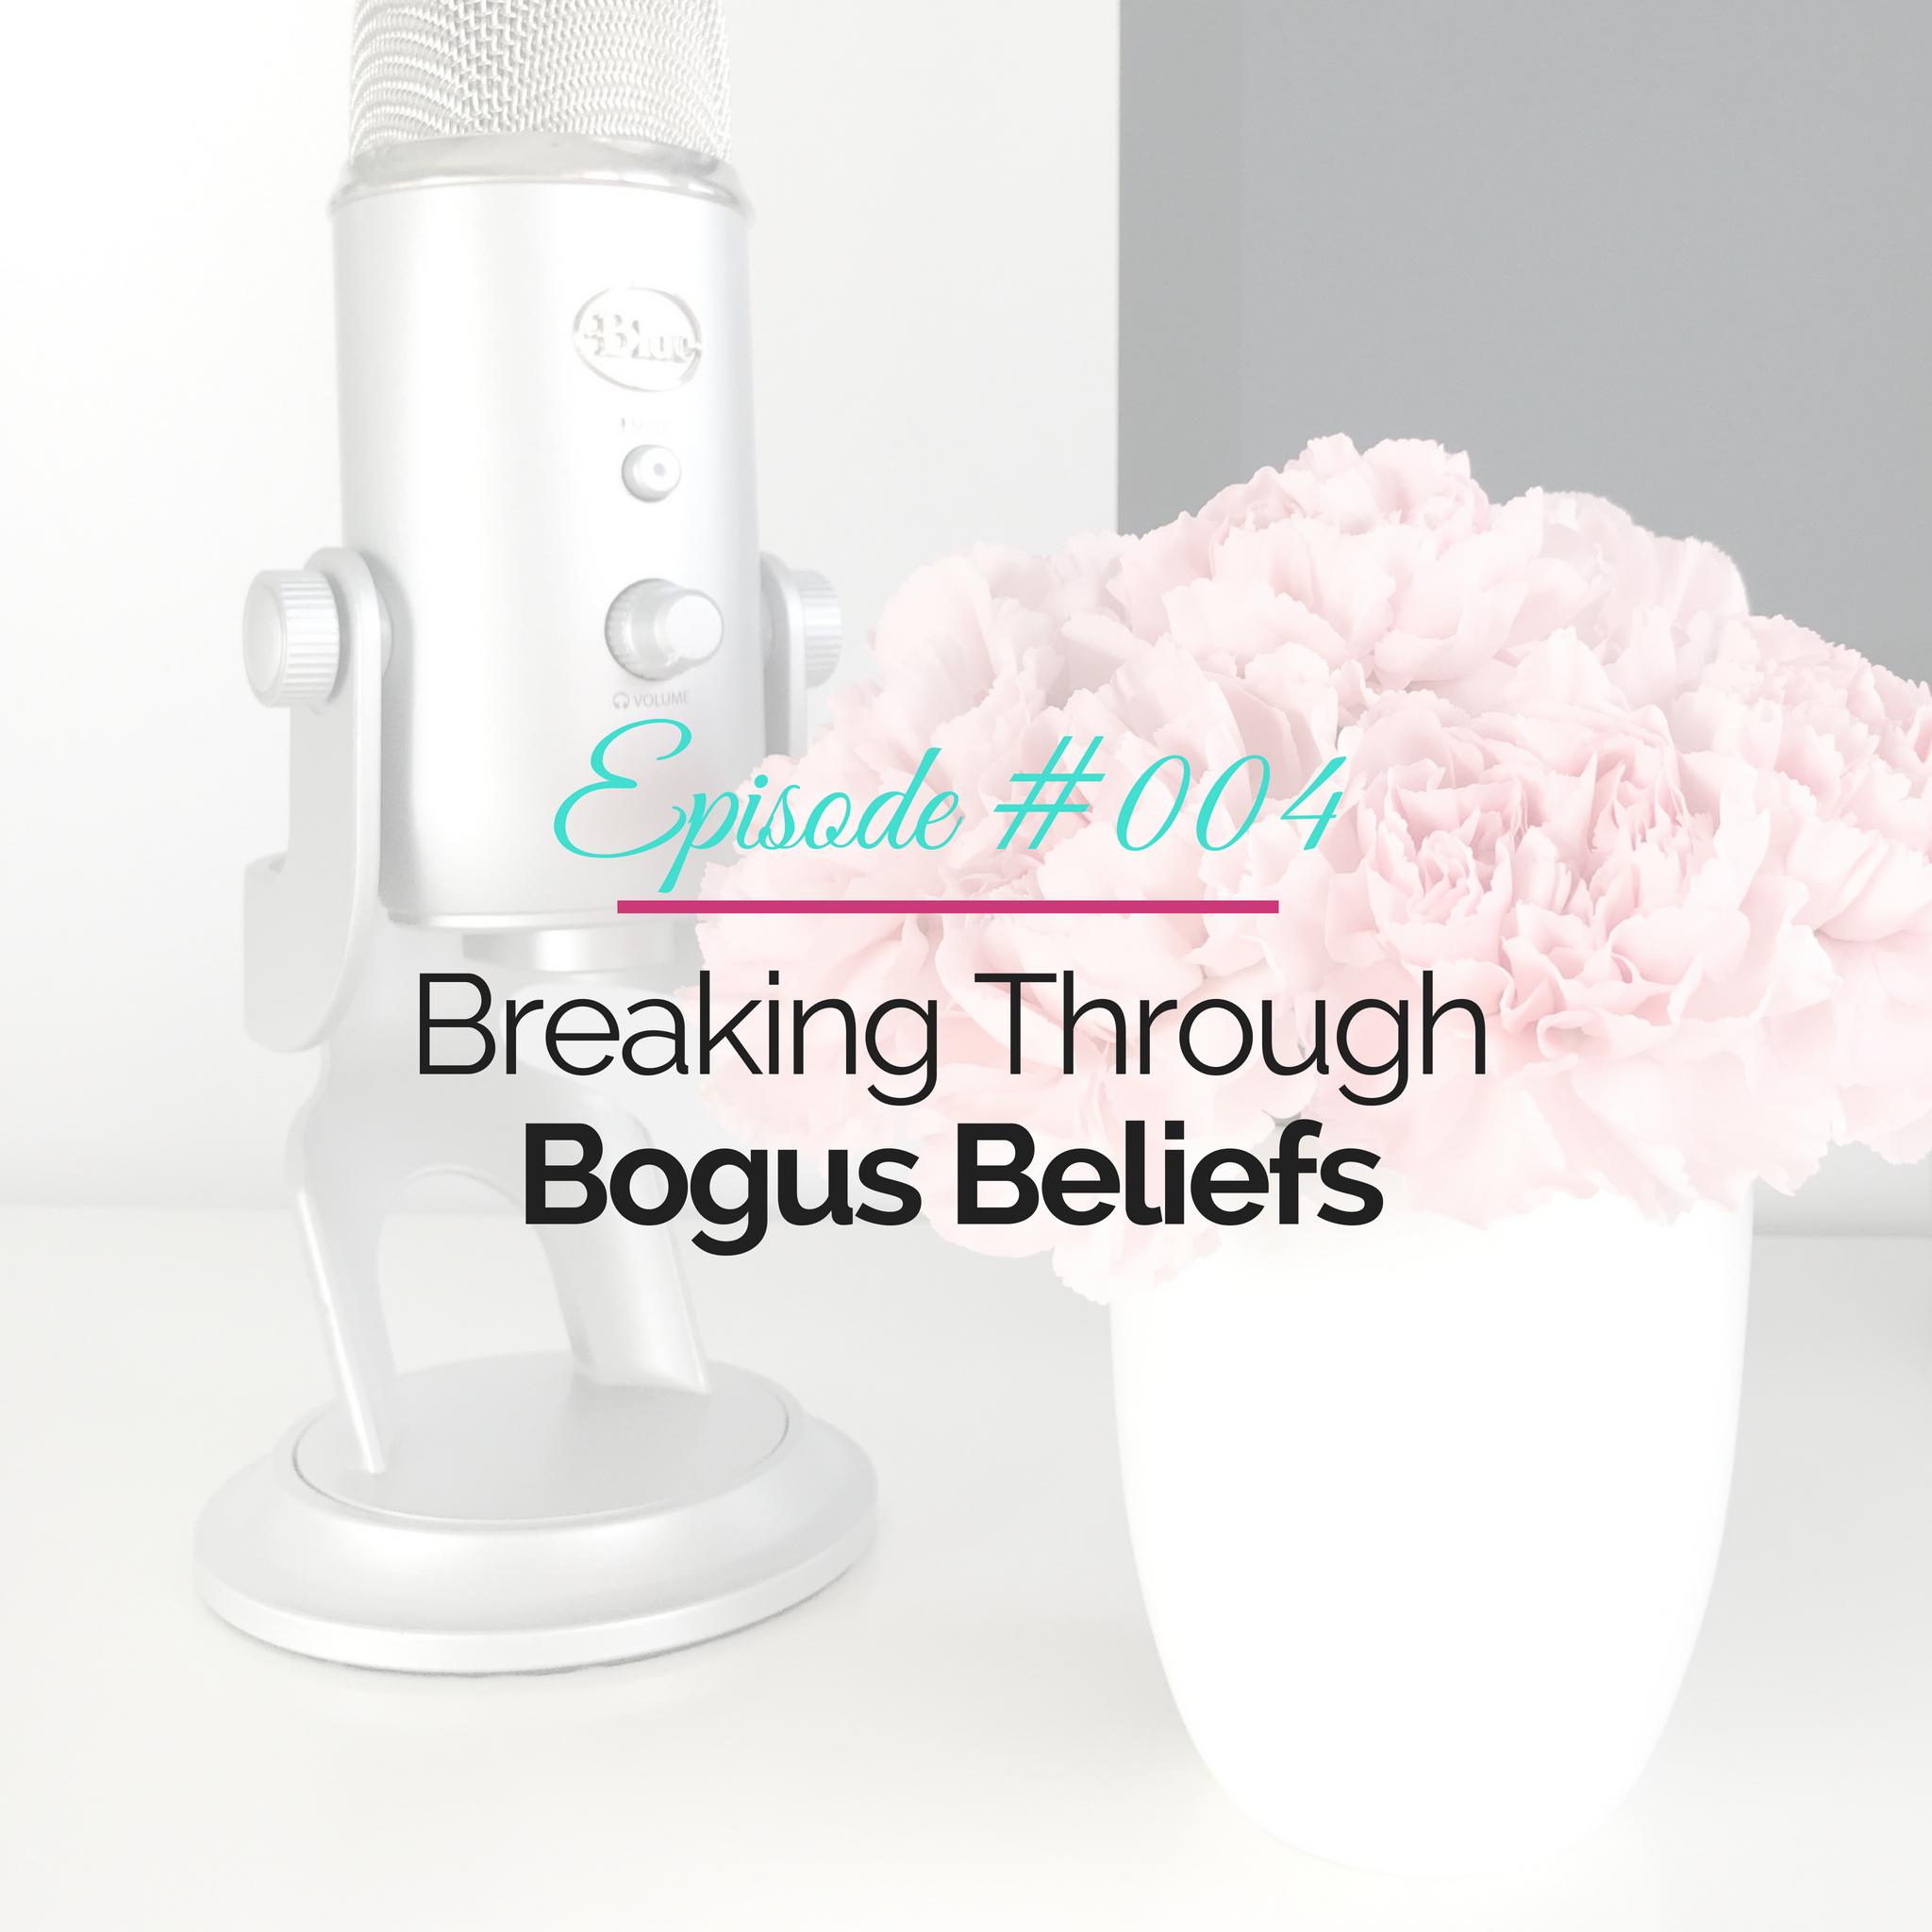 Breaking Through Bogus Beliefs